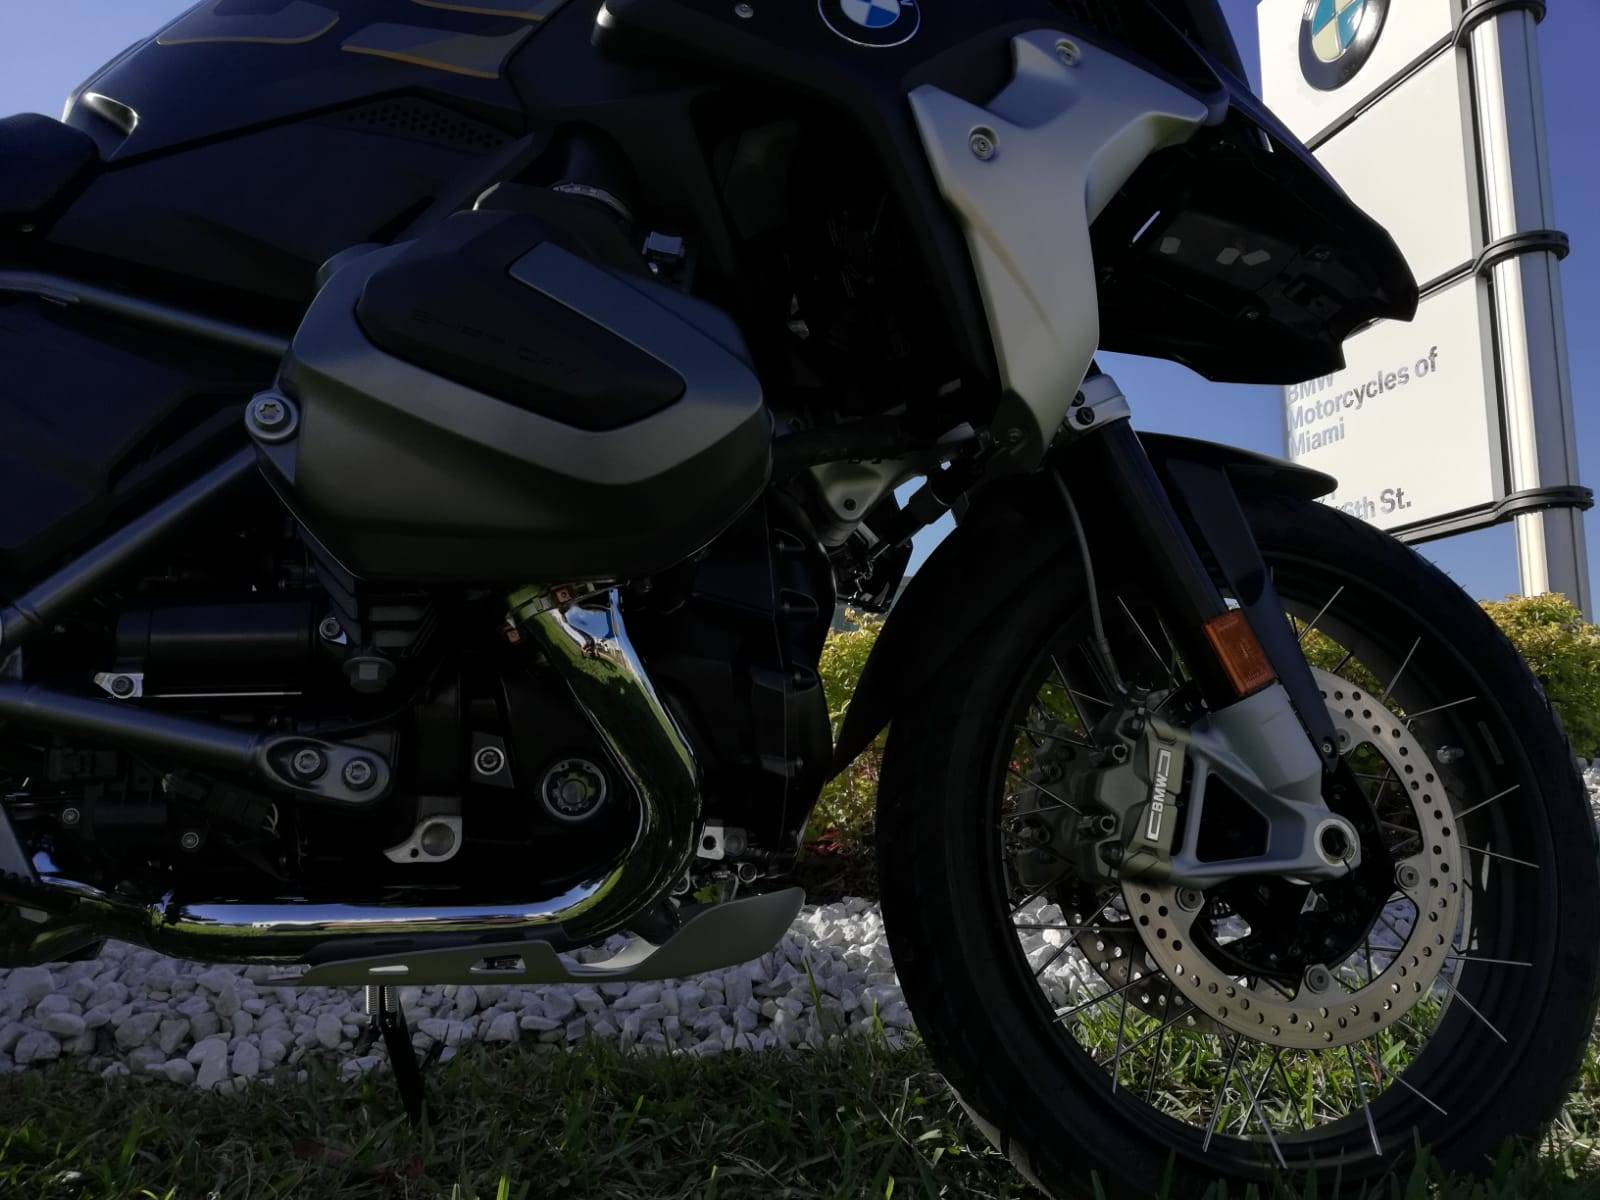 New 2019 BMW R 1250 GS for sale, BMW R 1250GS for sale, BMW Motorcycle GS, new BMW GS, Spirit of GS, BMW Motorcycles of Miami, Motorcycles of Miami, Motorcycles Miami, New Motorcycles, Used Motorcycles, pre-owned. #BMWMotorcyclesOfMiami #MotorcyclesOfMiami. - Photo 29